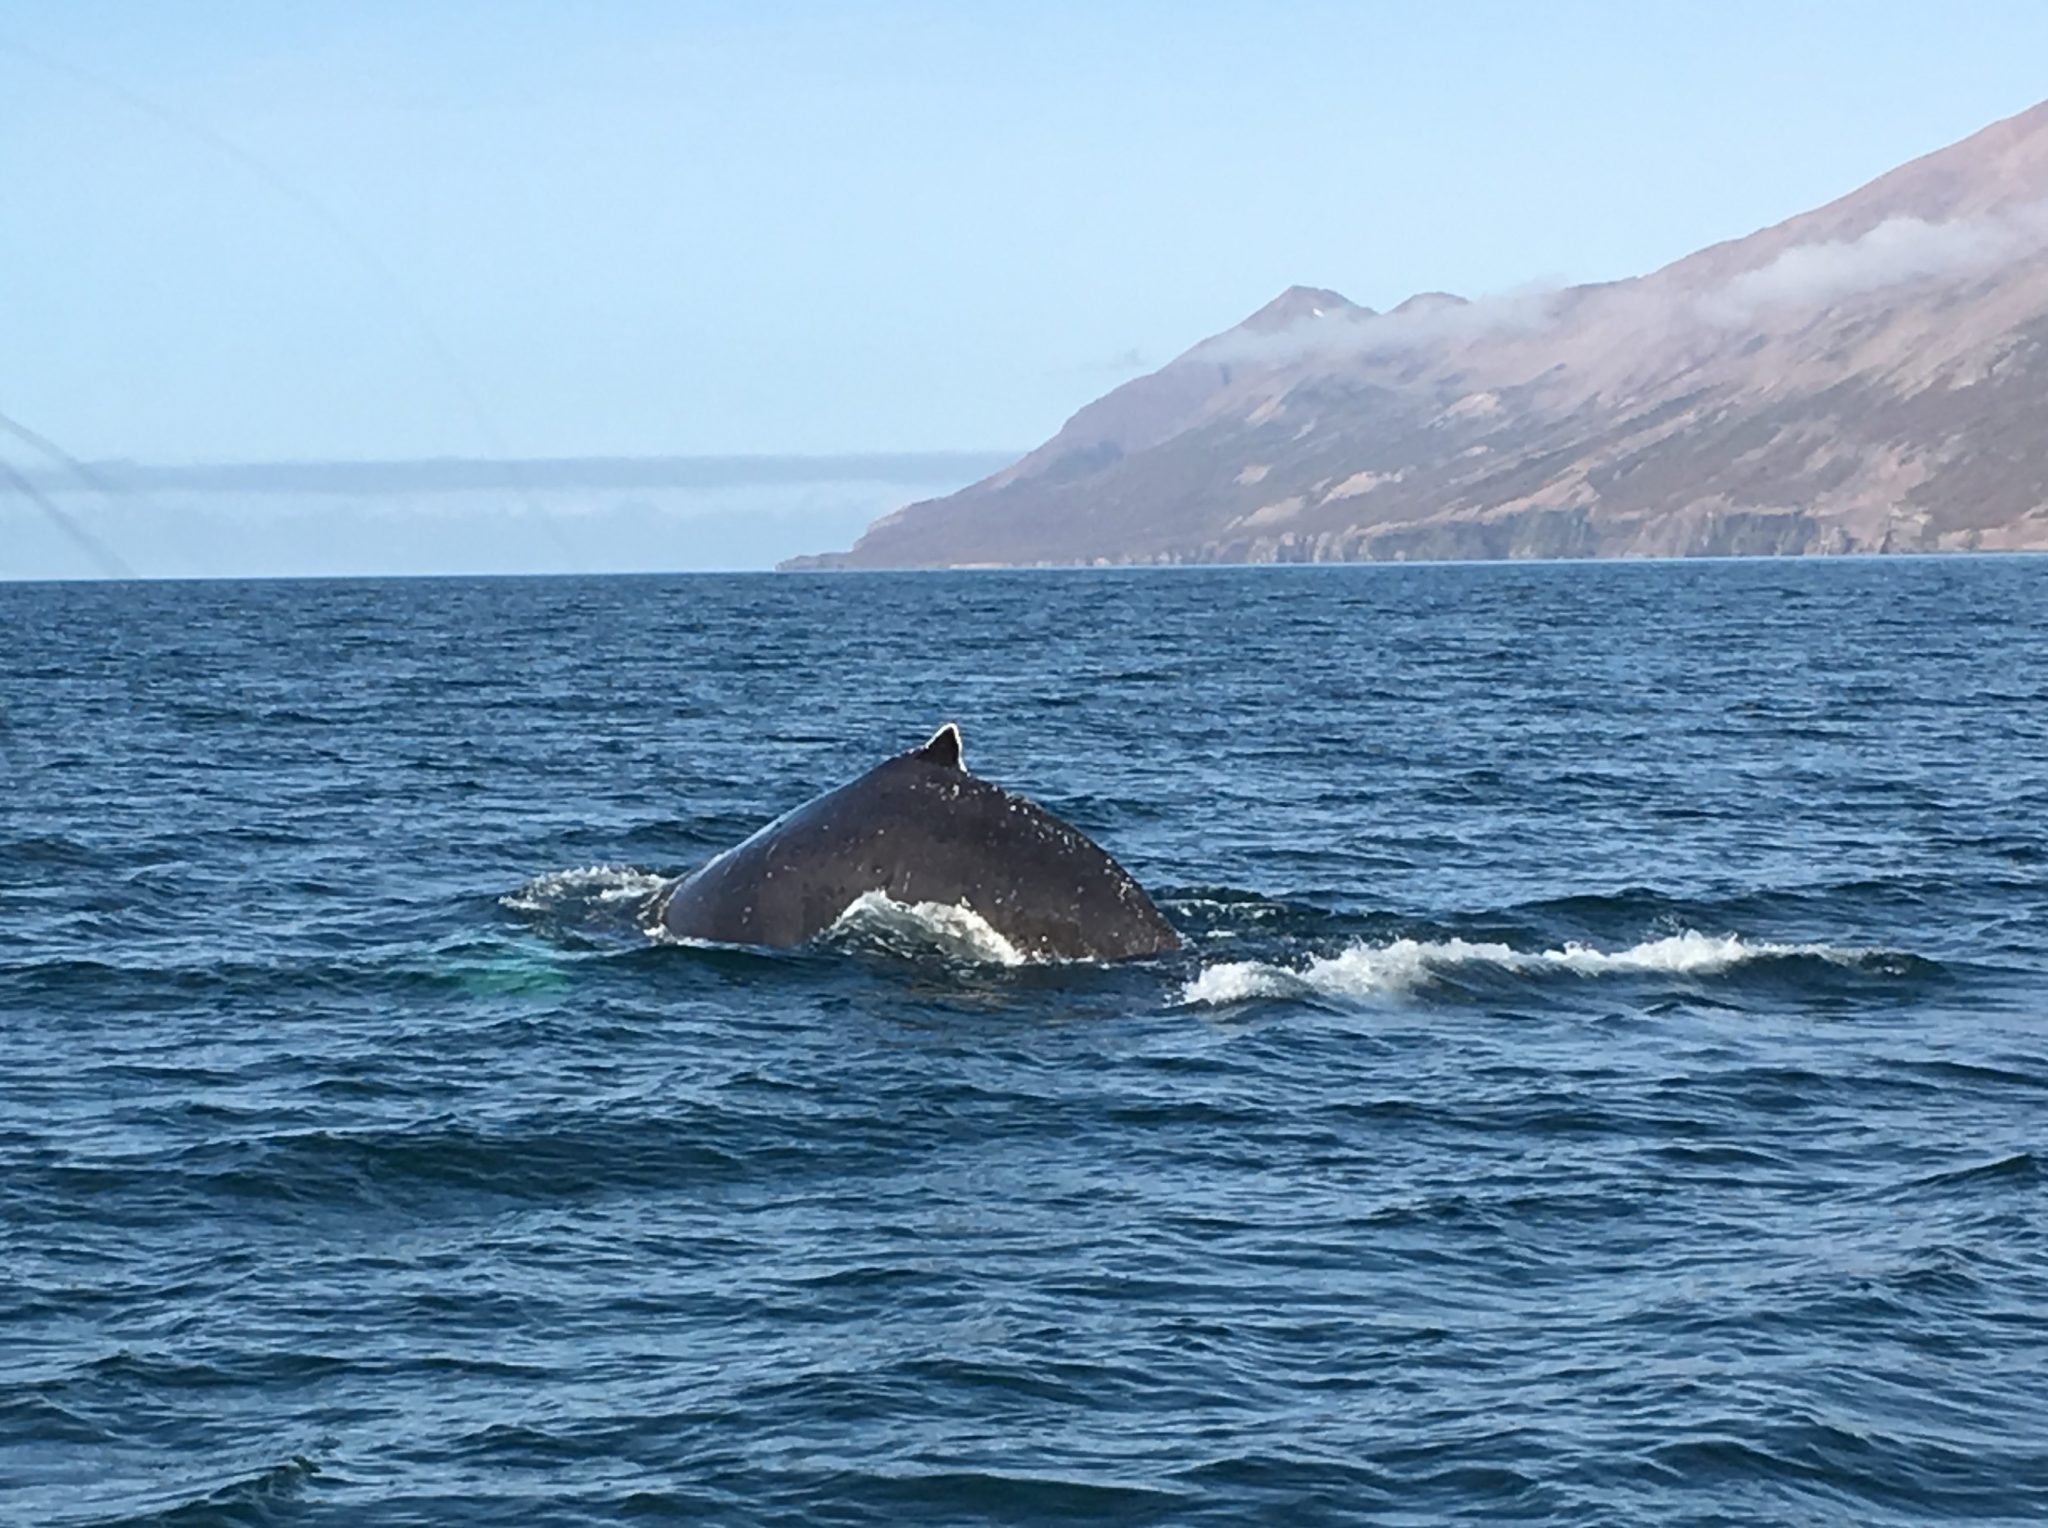 Second Humpback whale seen during our whale watching in Iceland